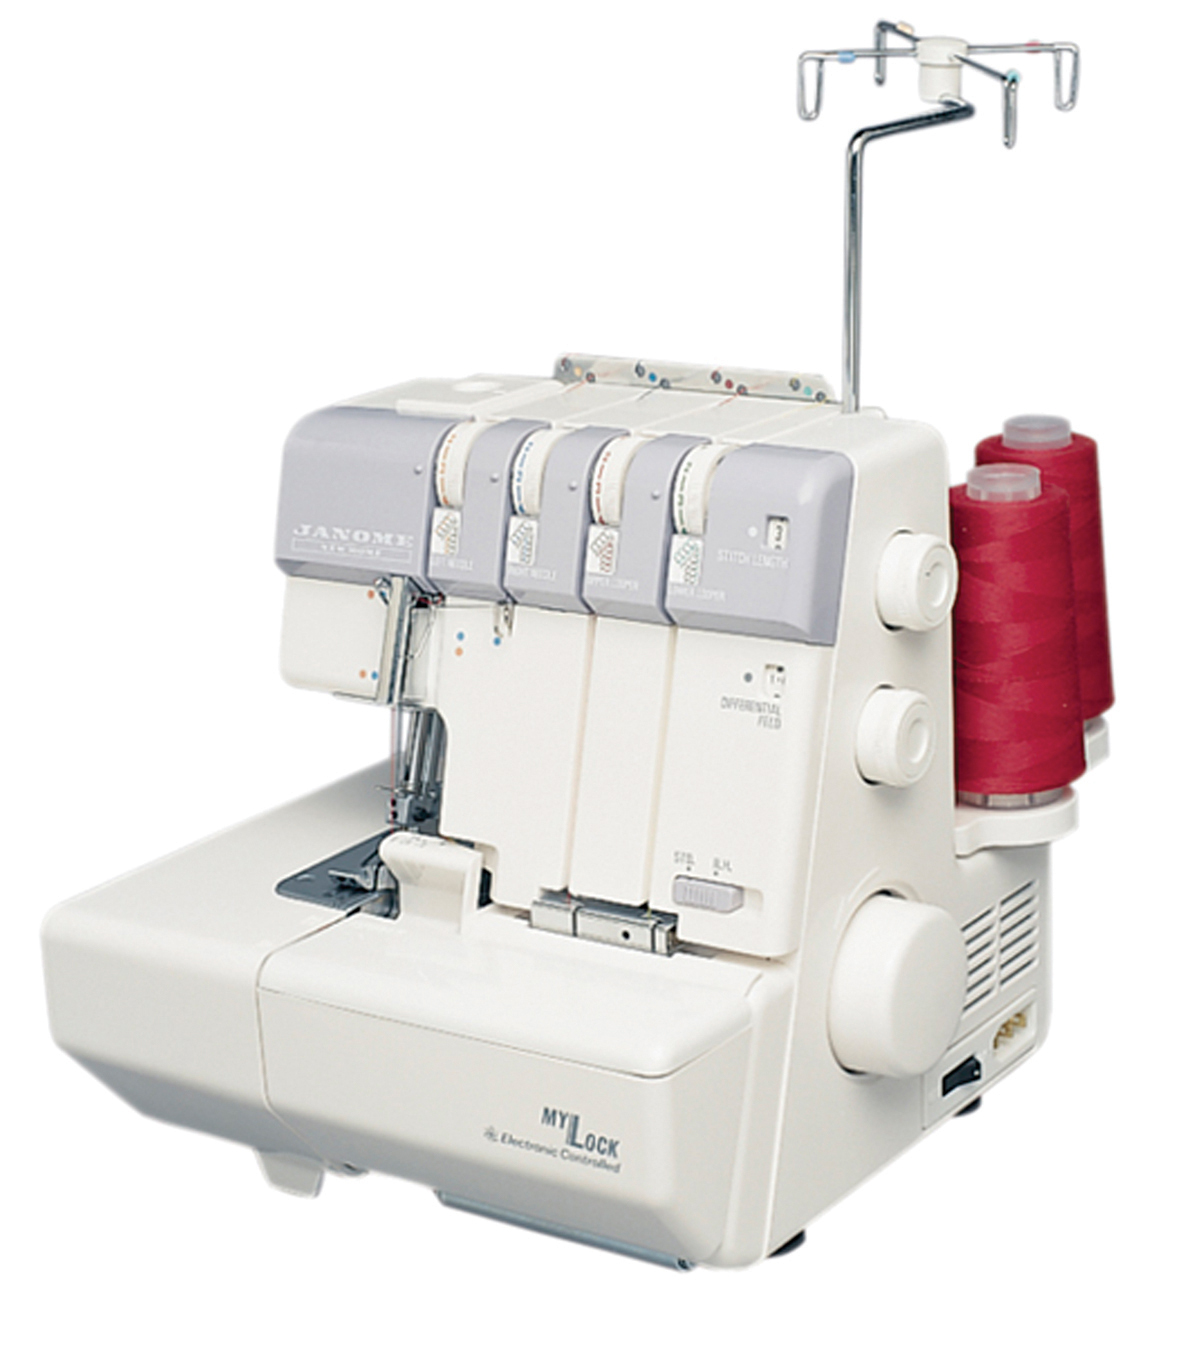 Janome 634D Mylock Serger Sewing Machine